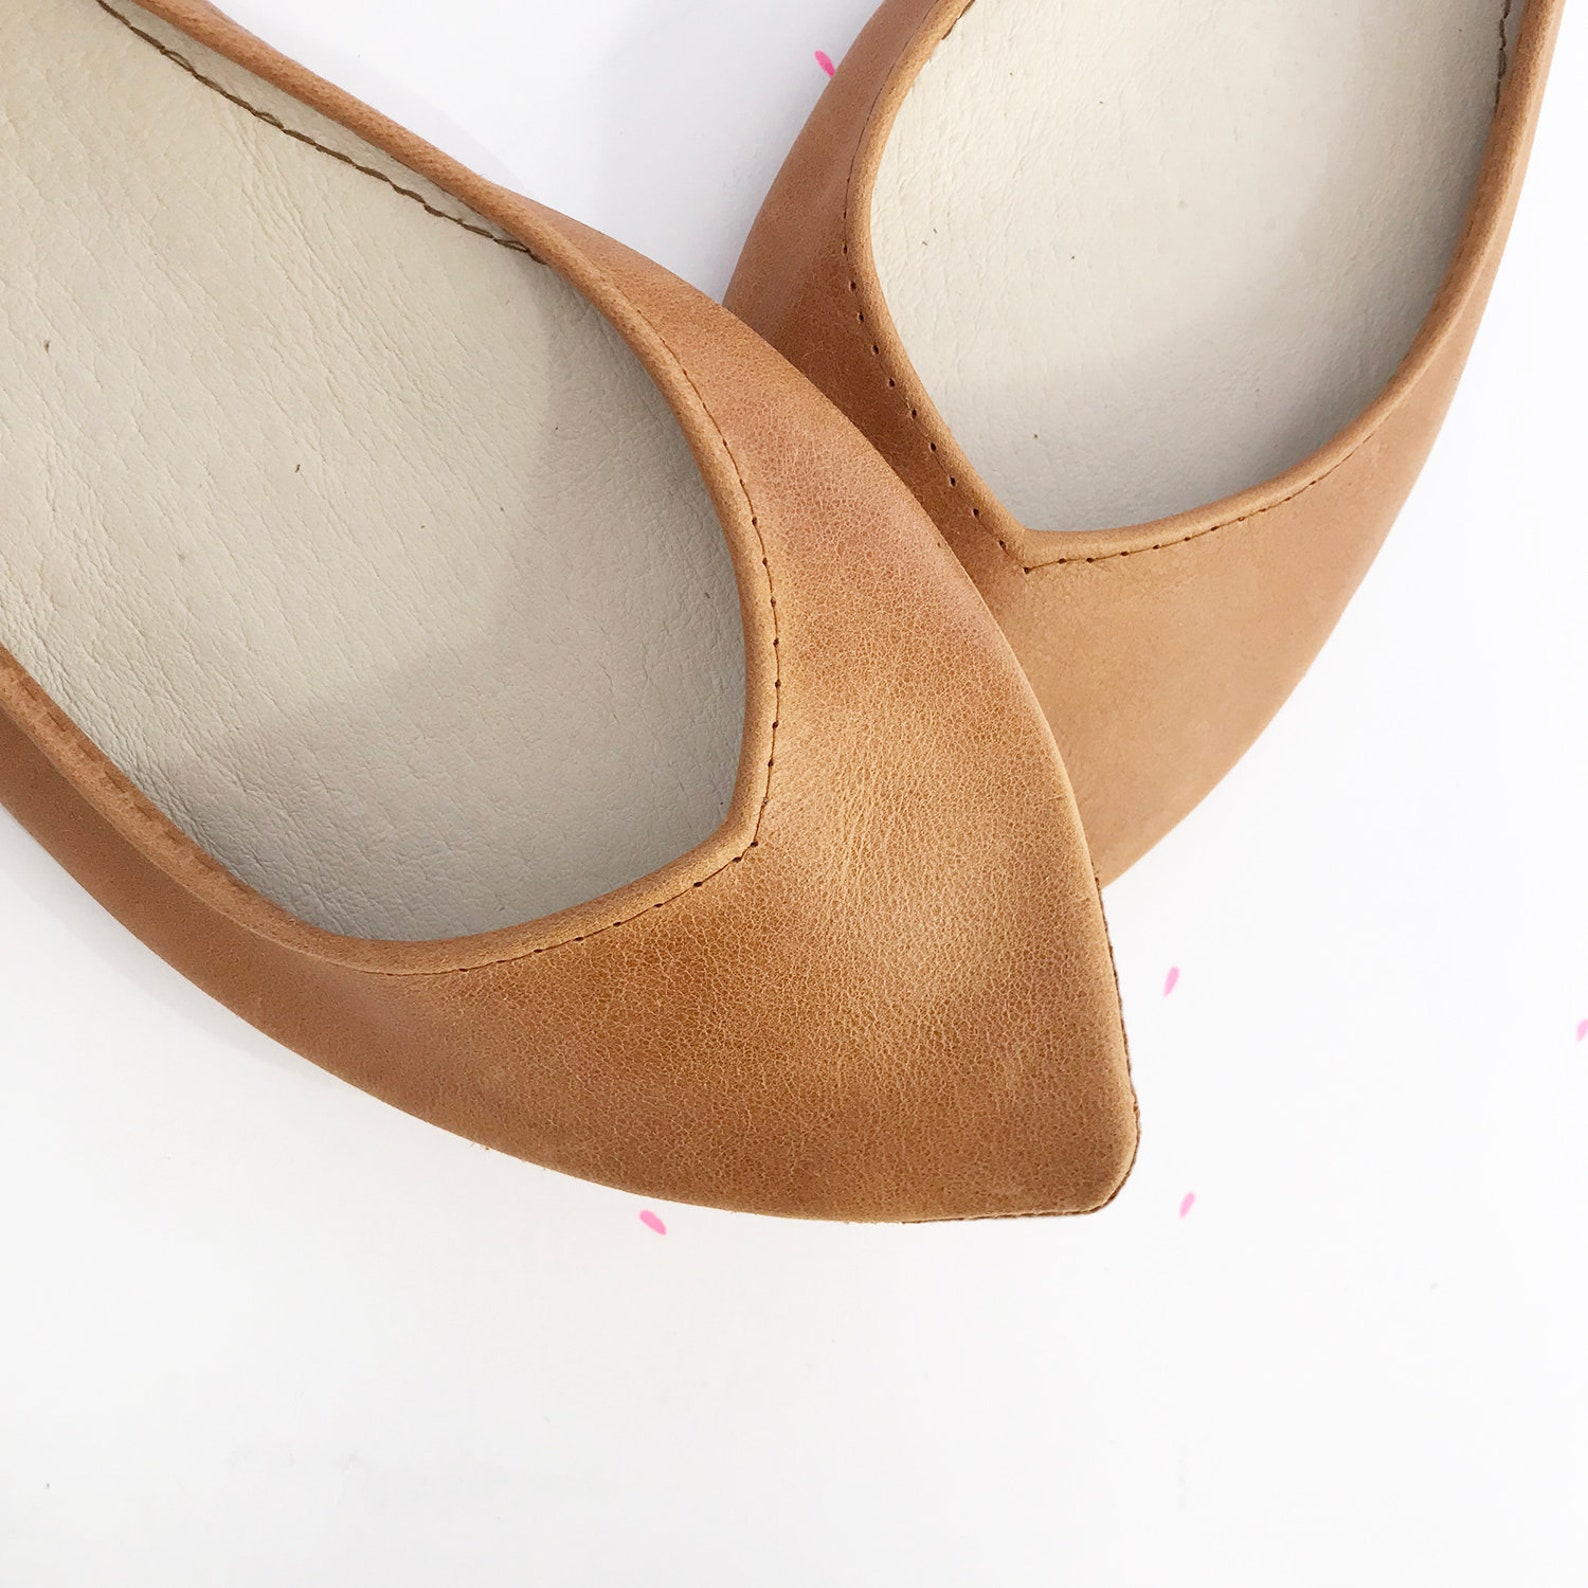 leather ballet flats in tan italian leather, pointed handmade ballerina, bridal shoes, elehandmade low heel comfortable flats